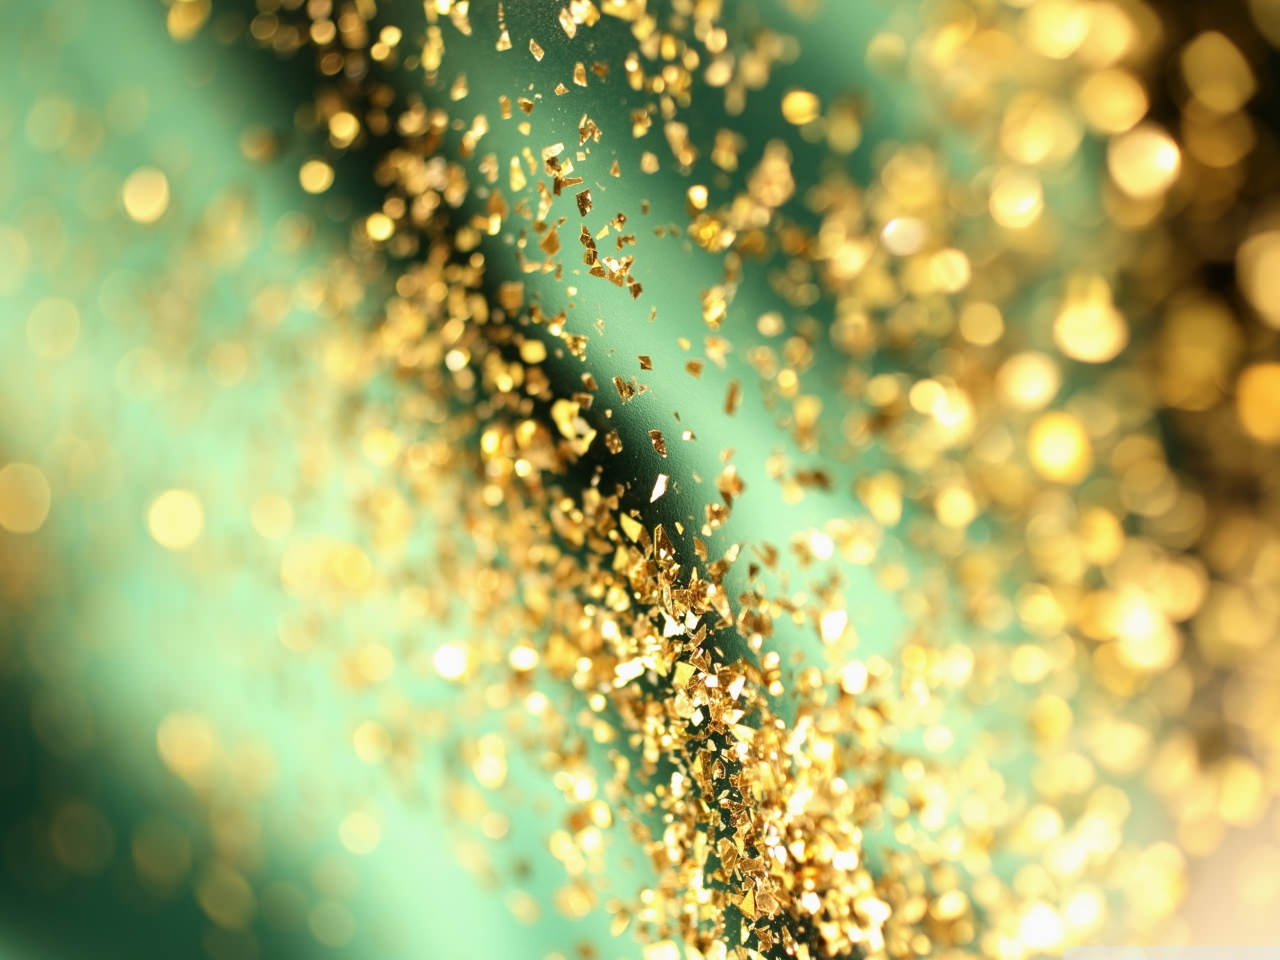 24 Glitter Wallpapers Backgrounds Images FreeCreatives 1280x960